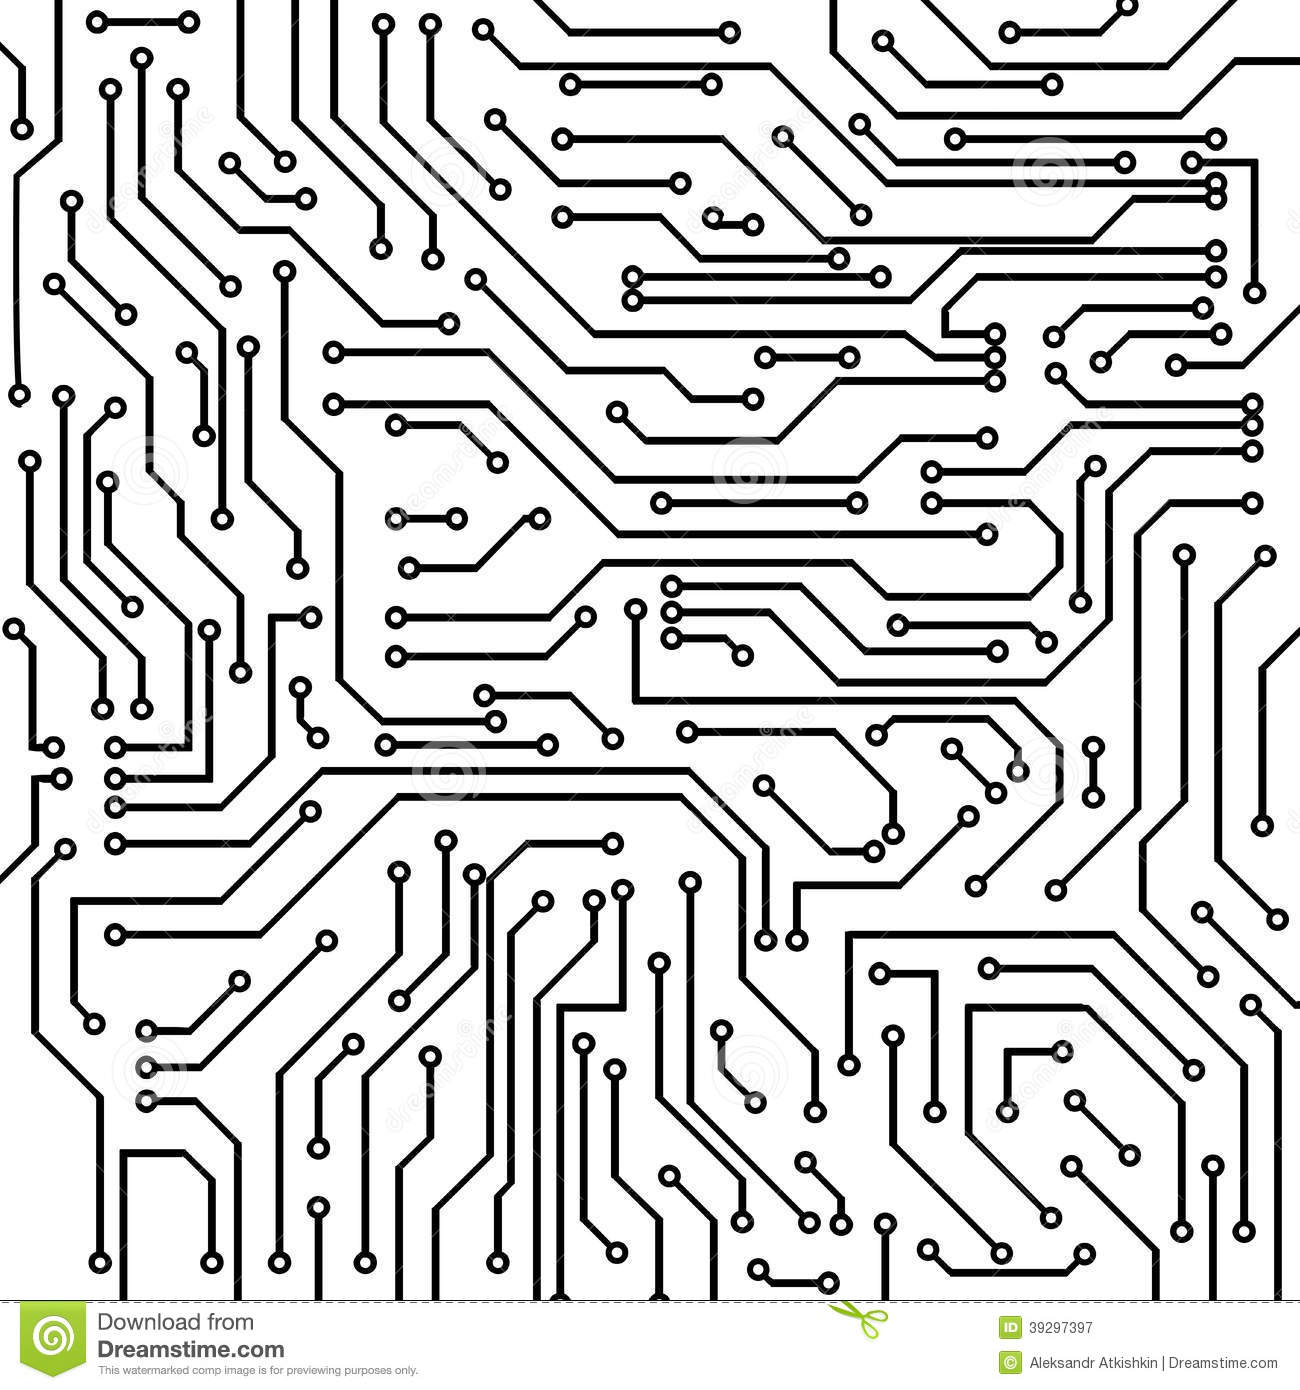 black and white circuit board clipart Clipground